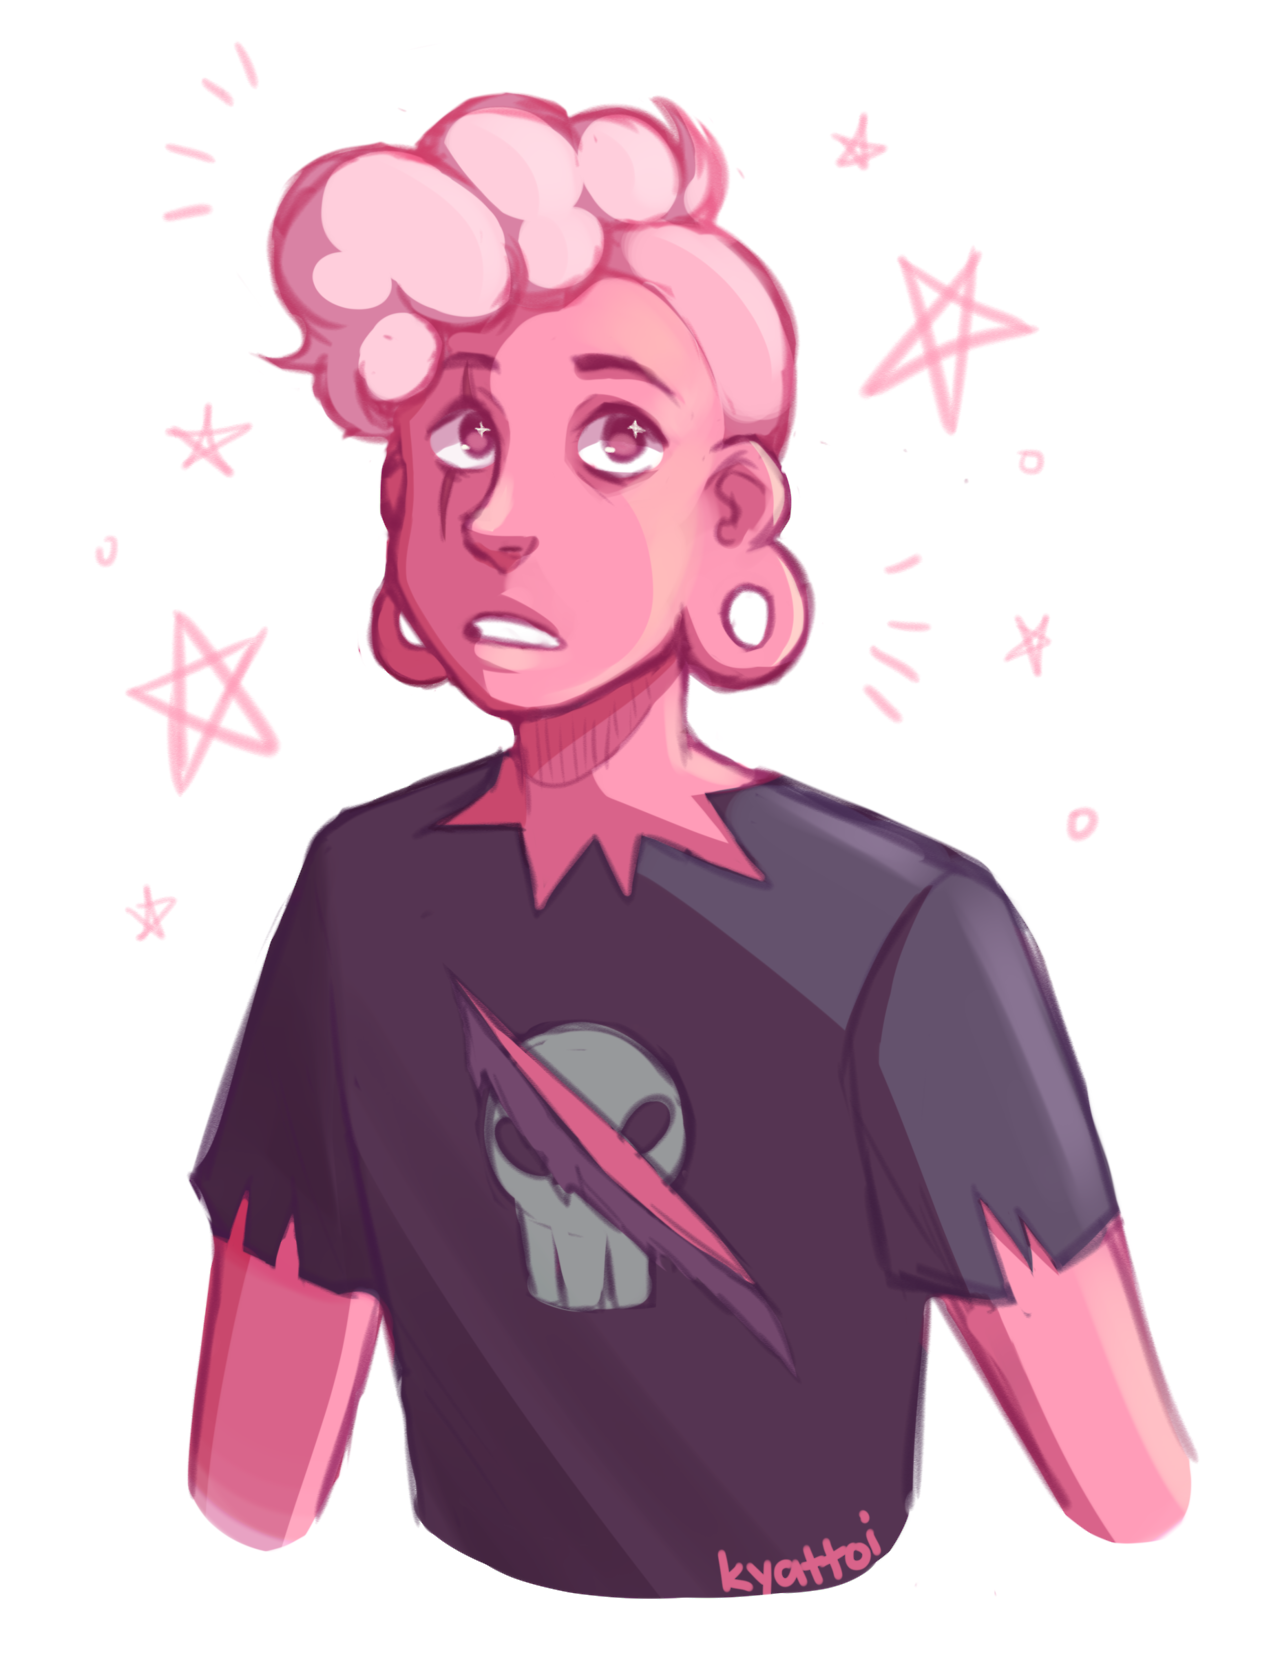 A quick Lars featuring his new look!